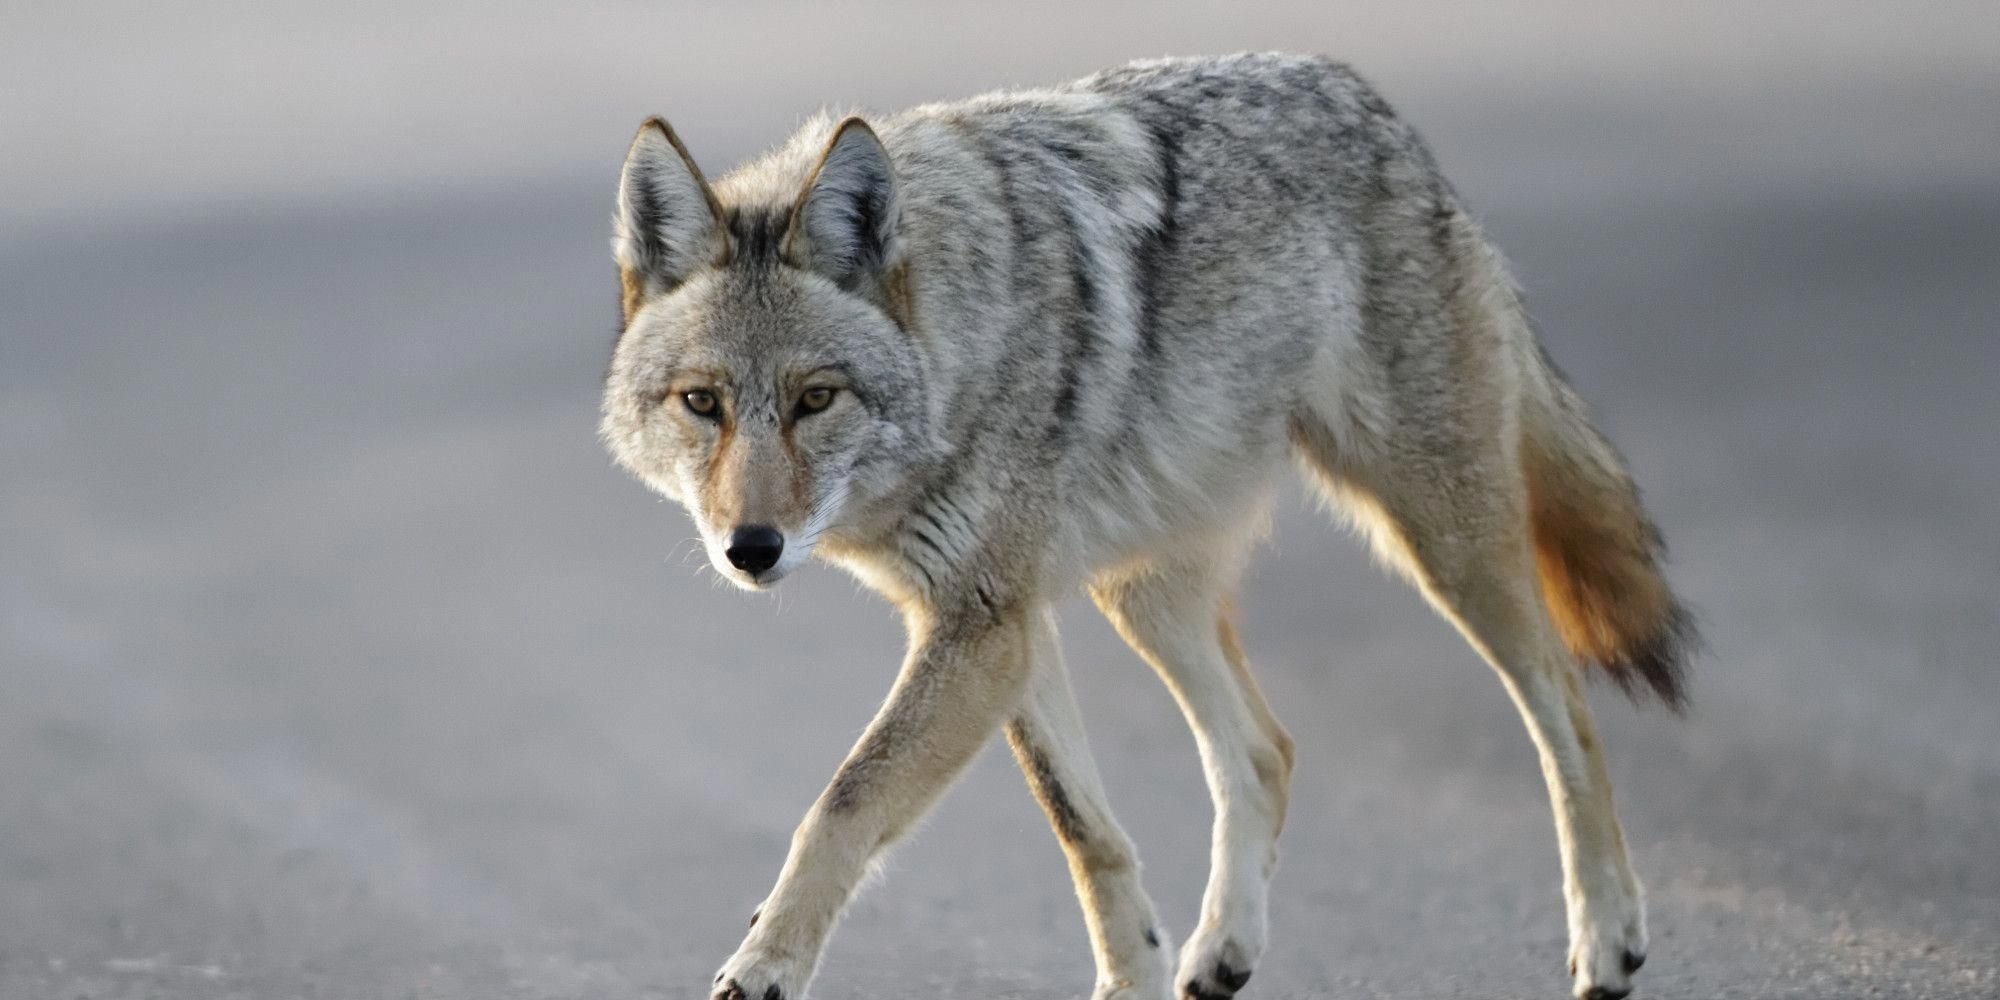 WATCH Coyote Roaming The City Attacks Small Boy  Photography WATCH Coyote Roaming The City Attacks Small Boy Emeil Hawkins 3YearOld Chicago Boy Attacked By Coyote After...